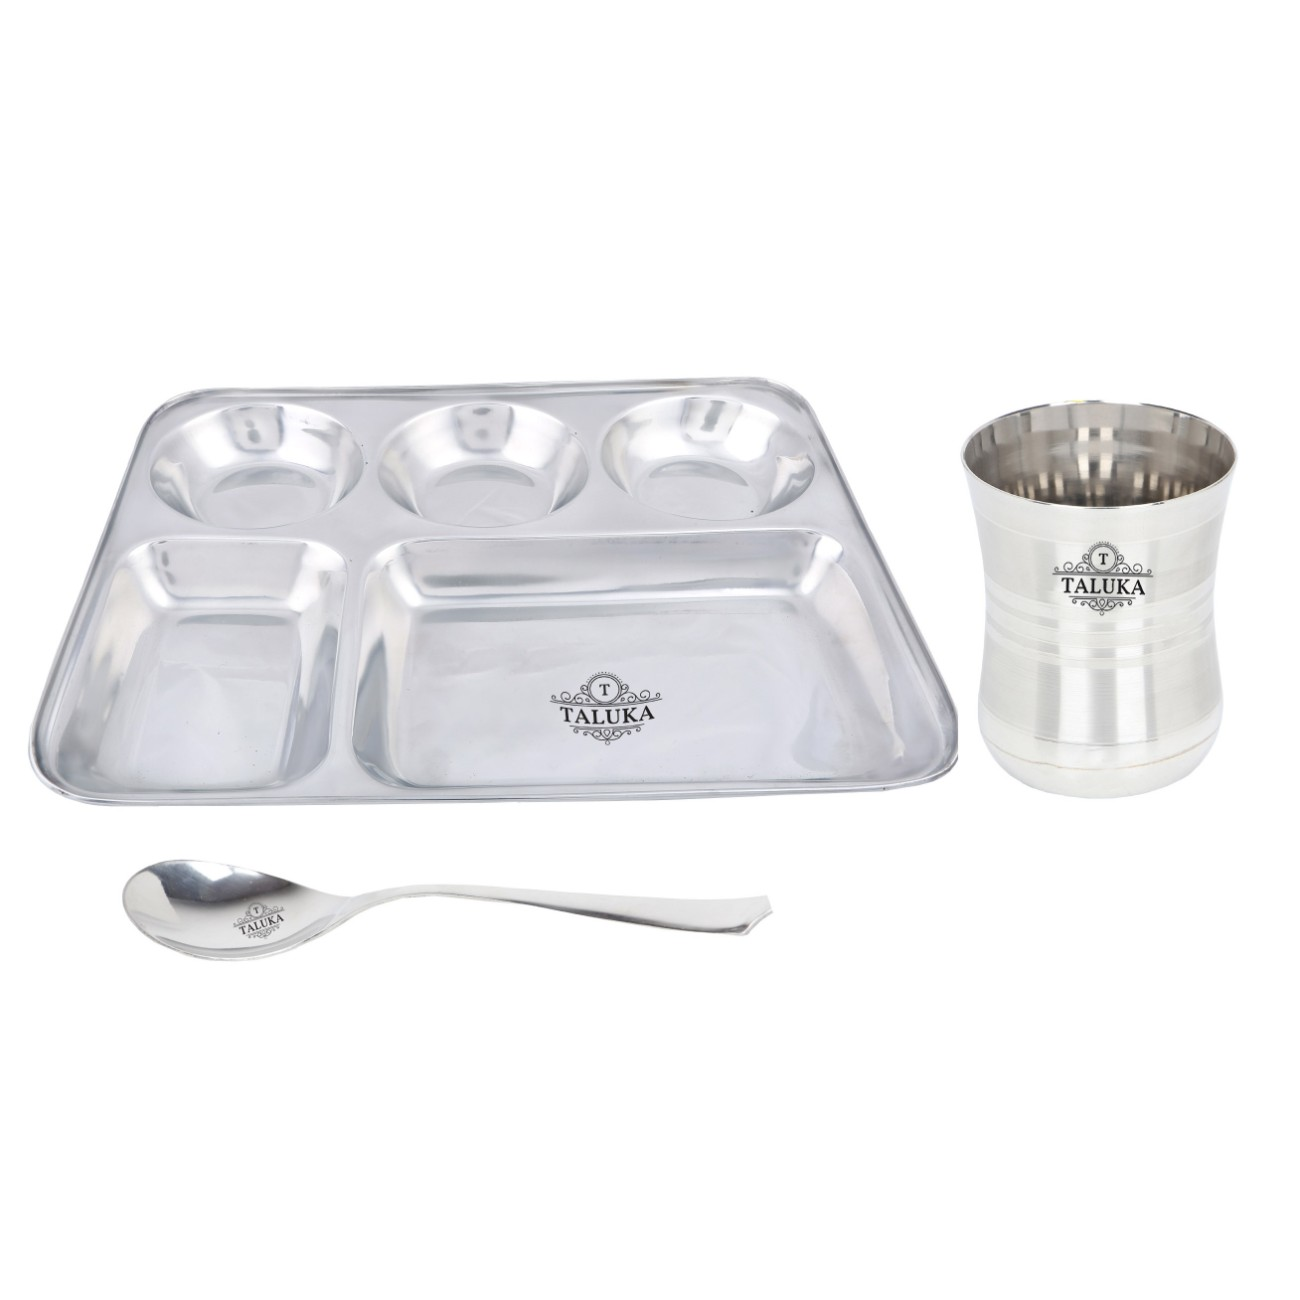 Stainless Steel 5IN1 Compartment Snacks Plate With Glass Spoon Dinner Thali Set